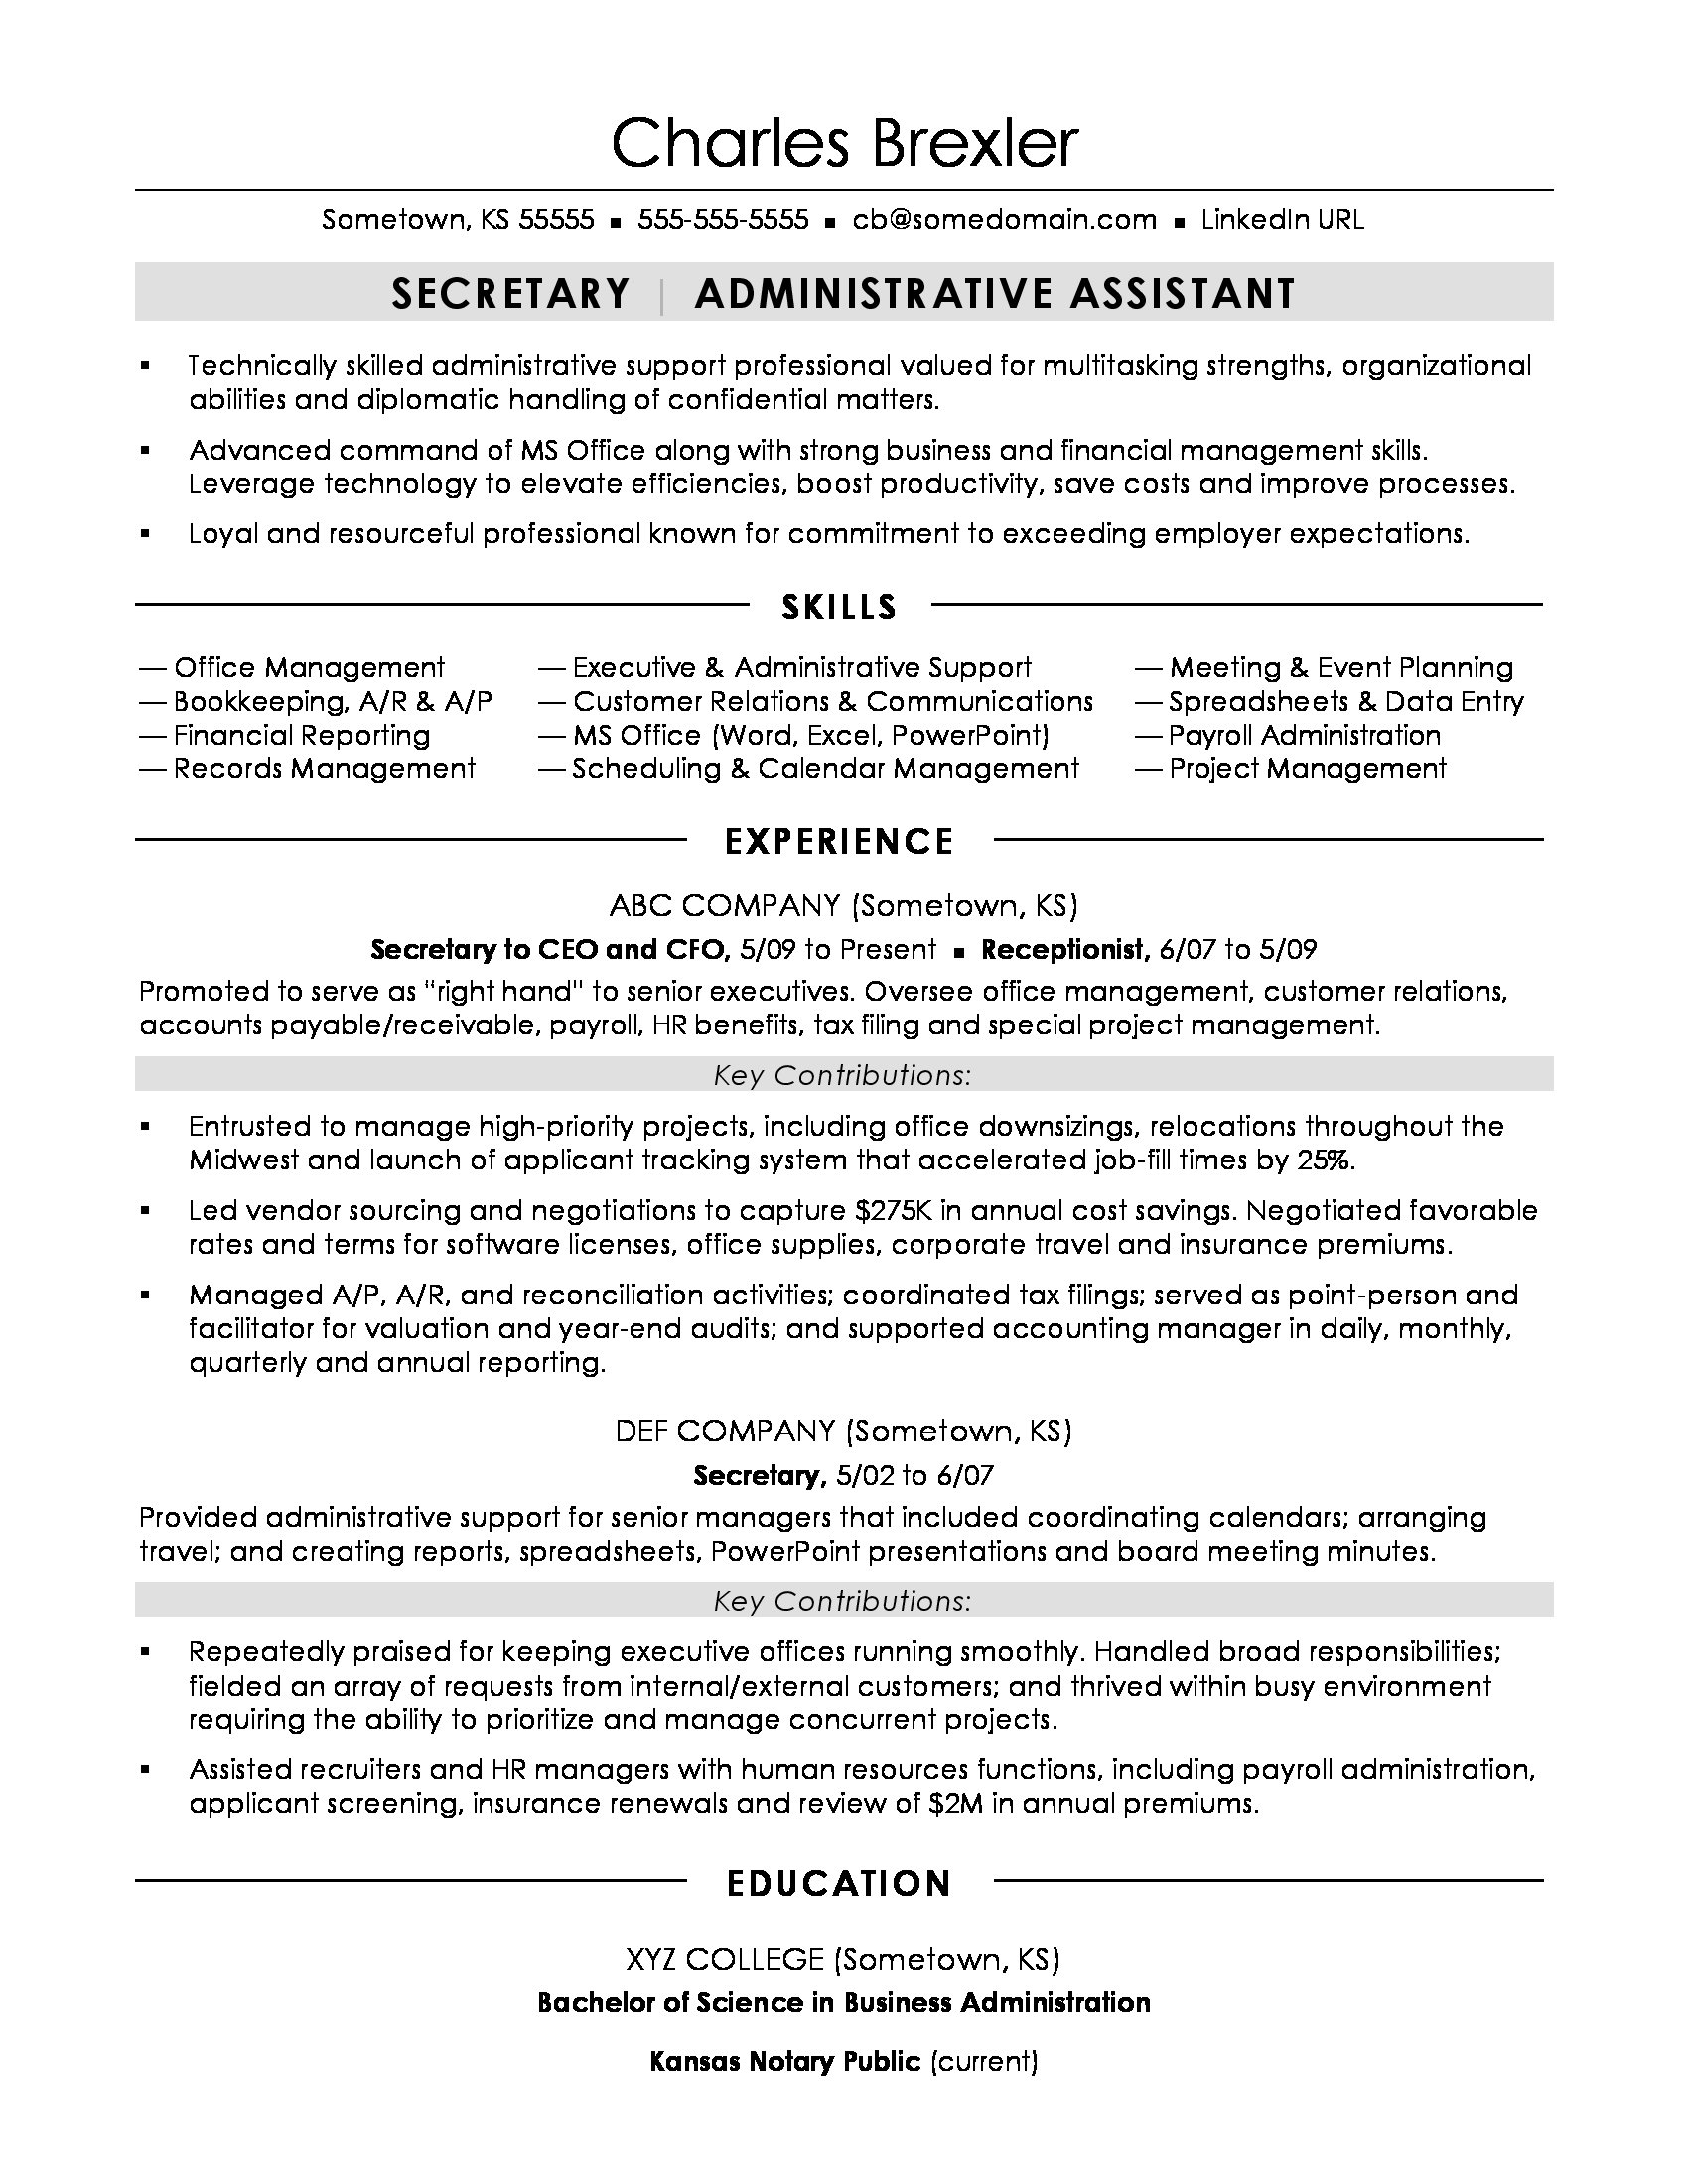 Secretary Resume Sample  Skills And Abilities On Resume